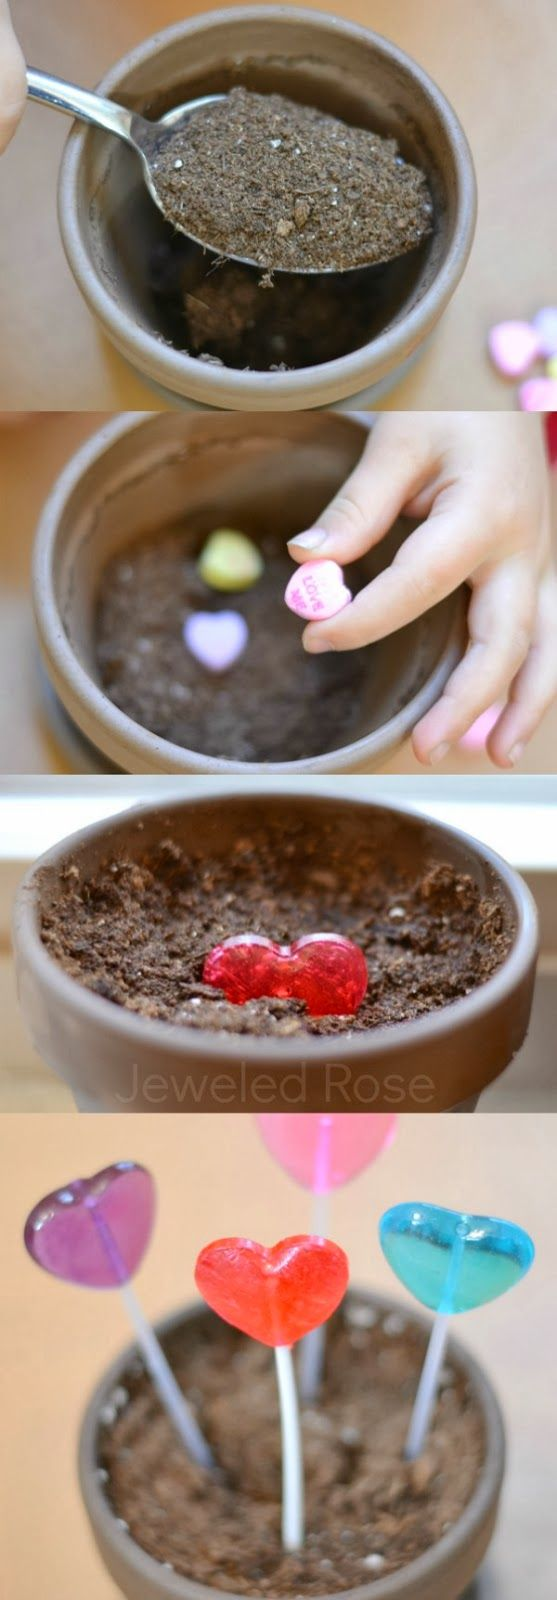 Magically grow heart pops and WOW the kids - such a cute activity for Valentine's Day!